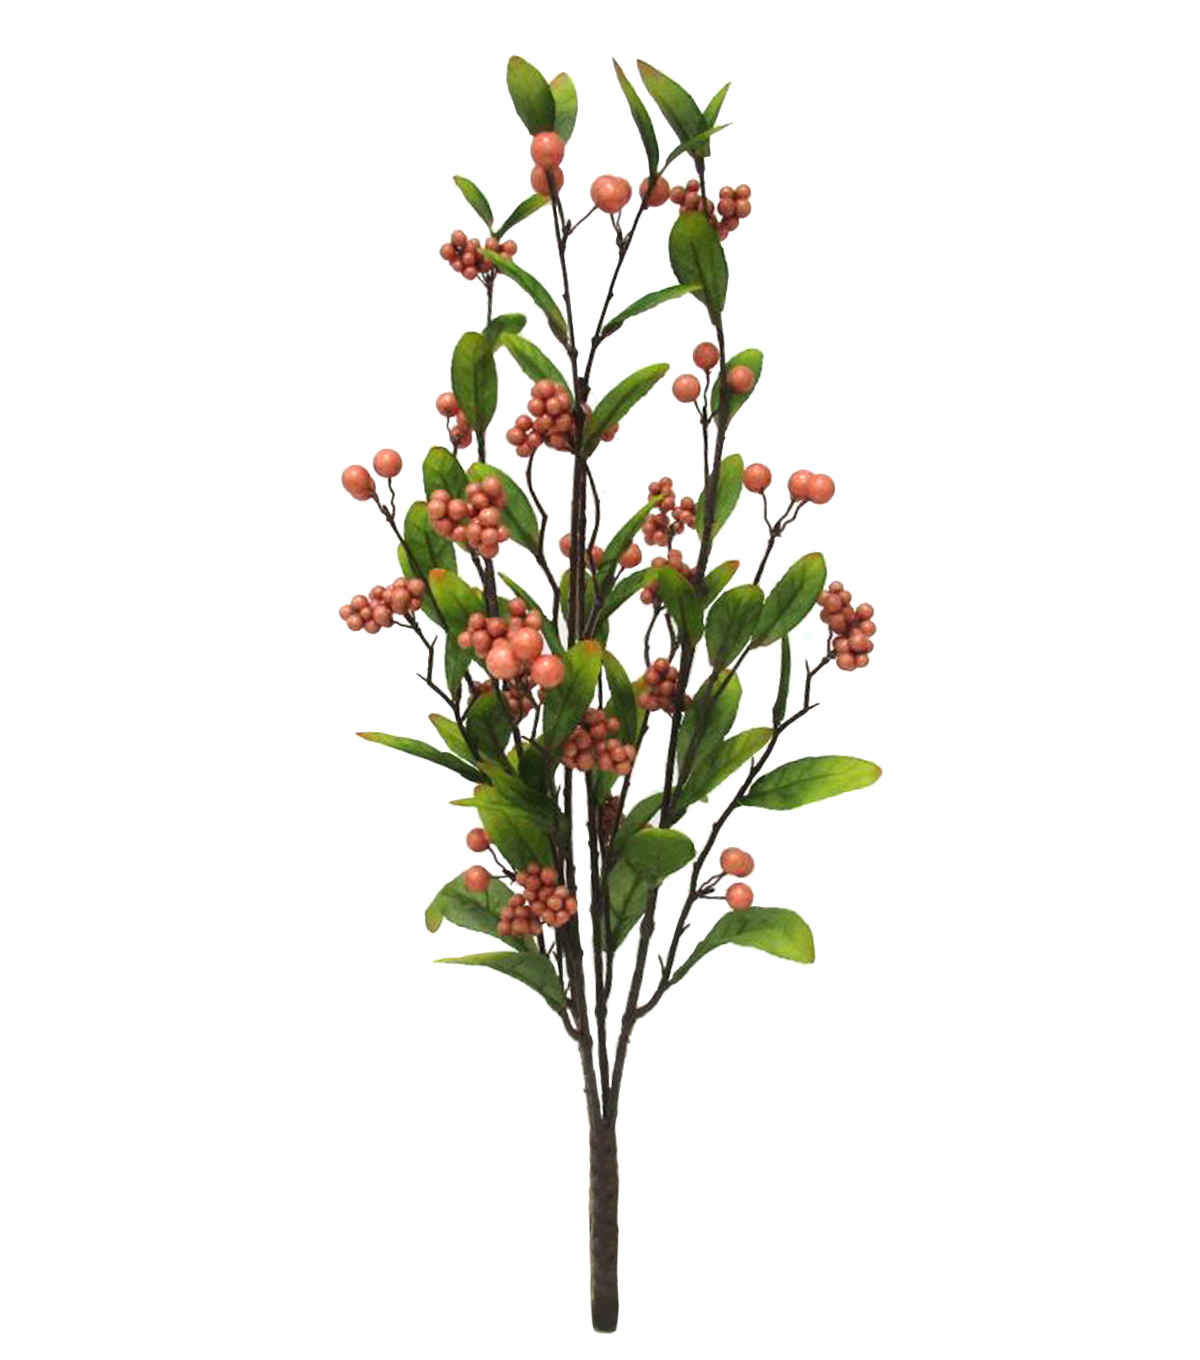 Blooming Autumn Berry Bush-Peach